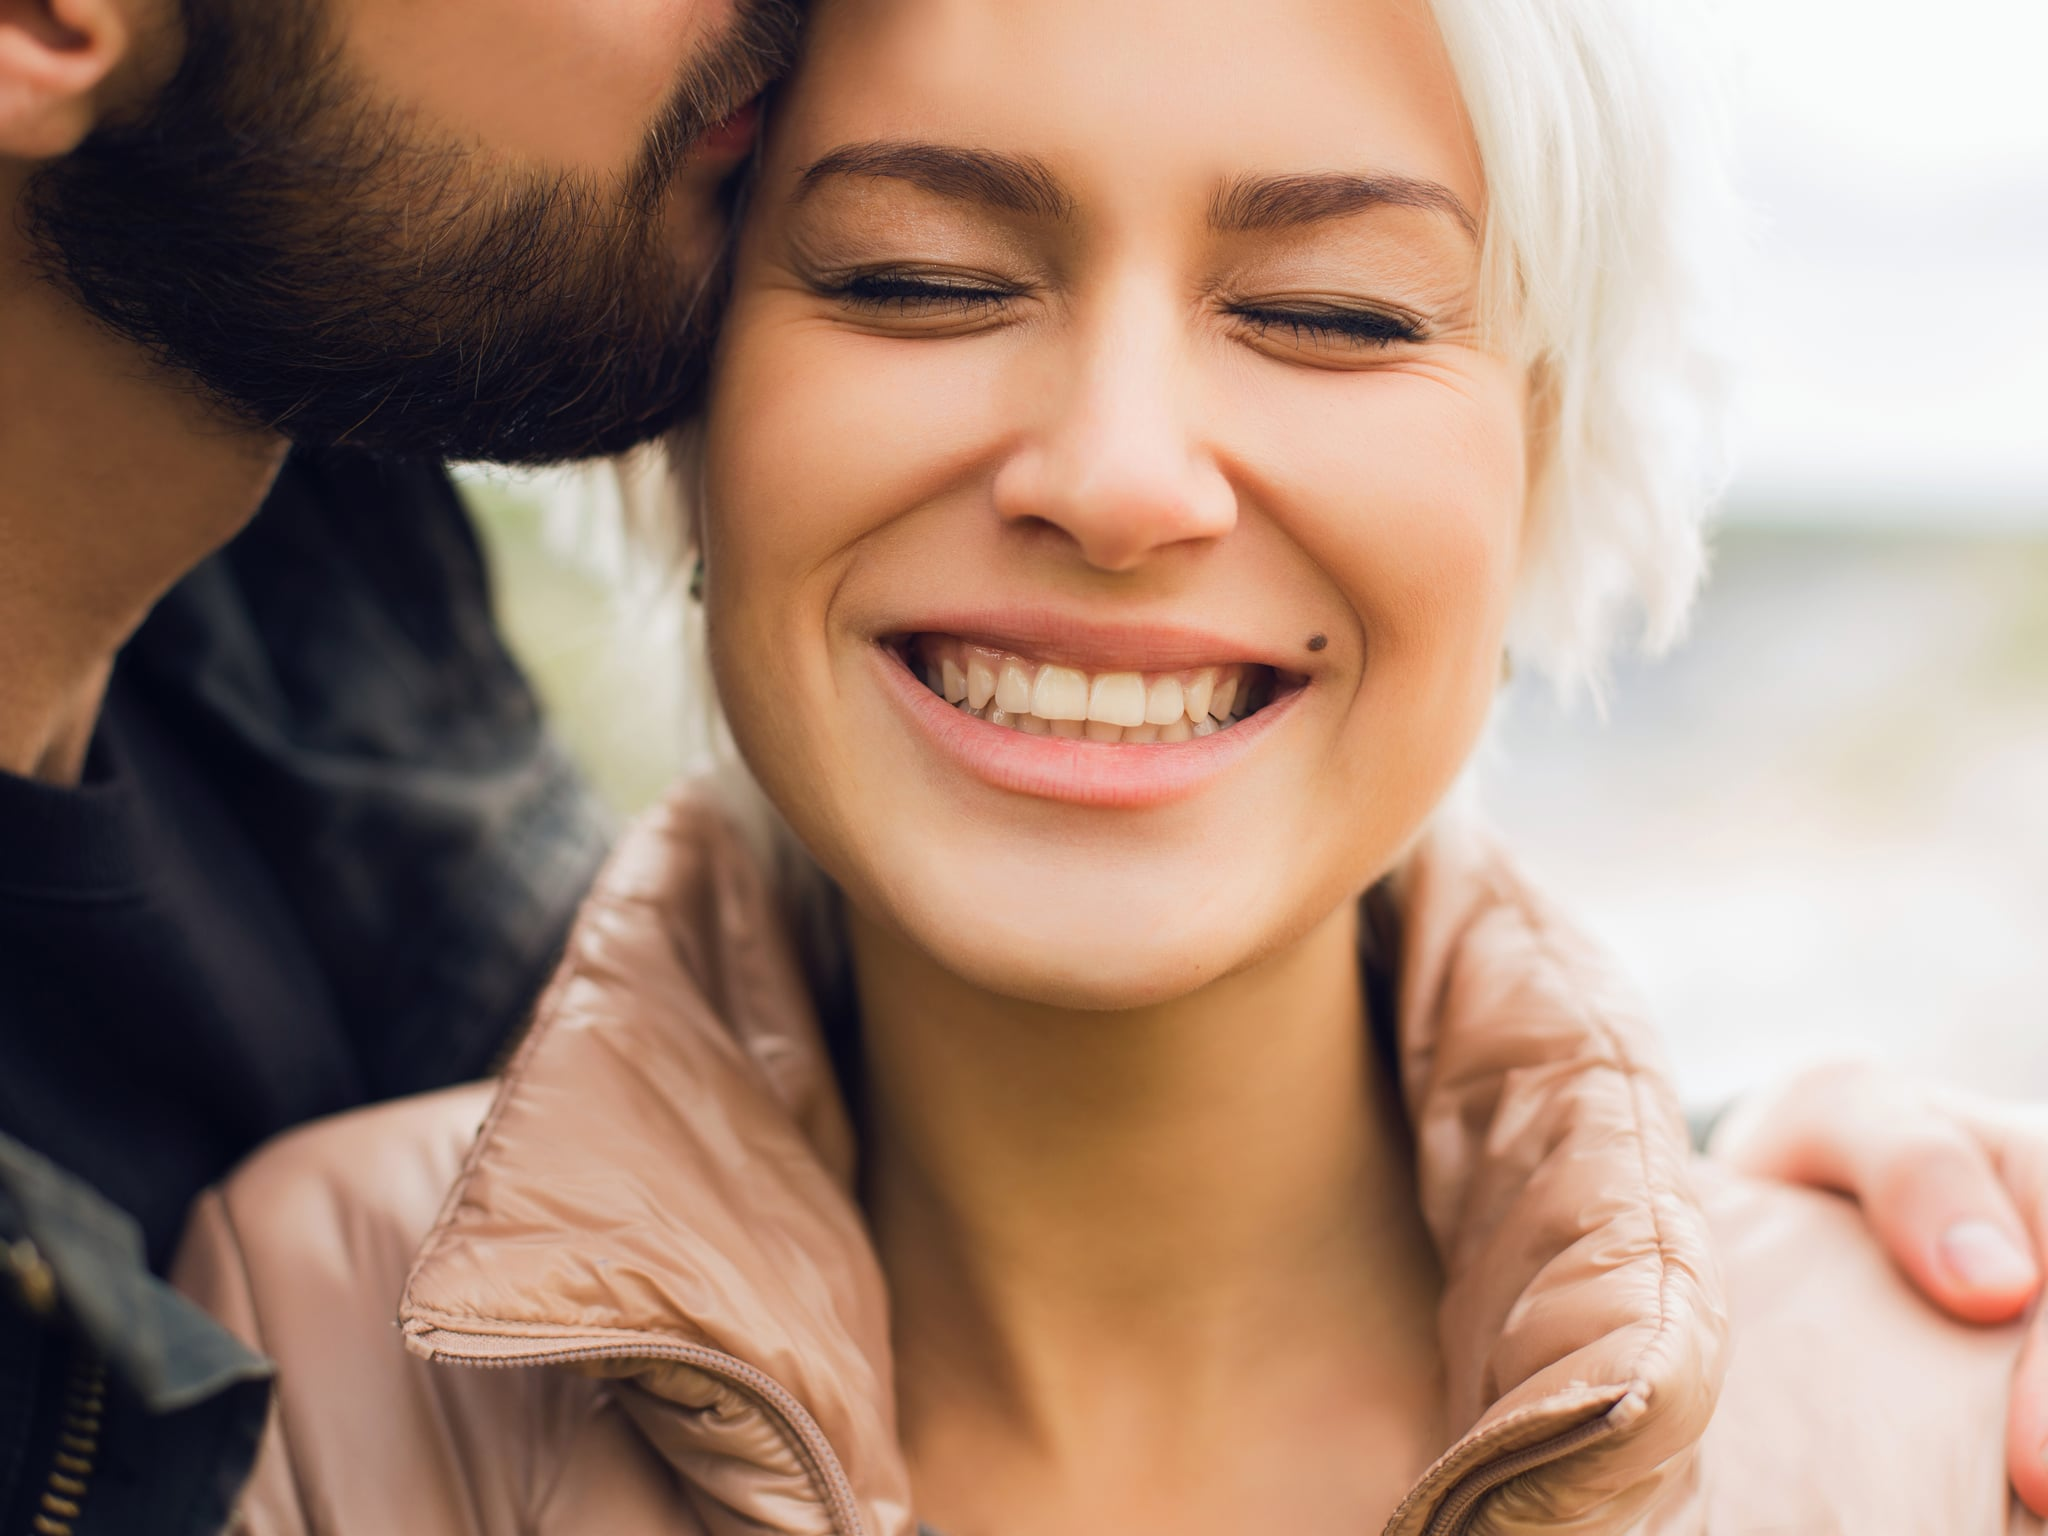 Dating advice for women playing hard to get